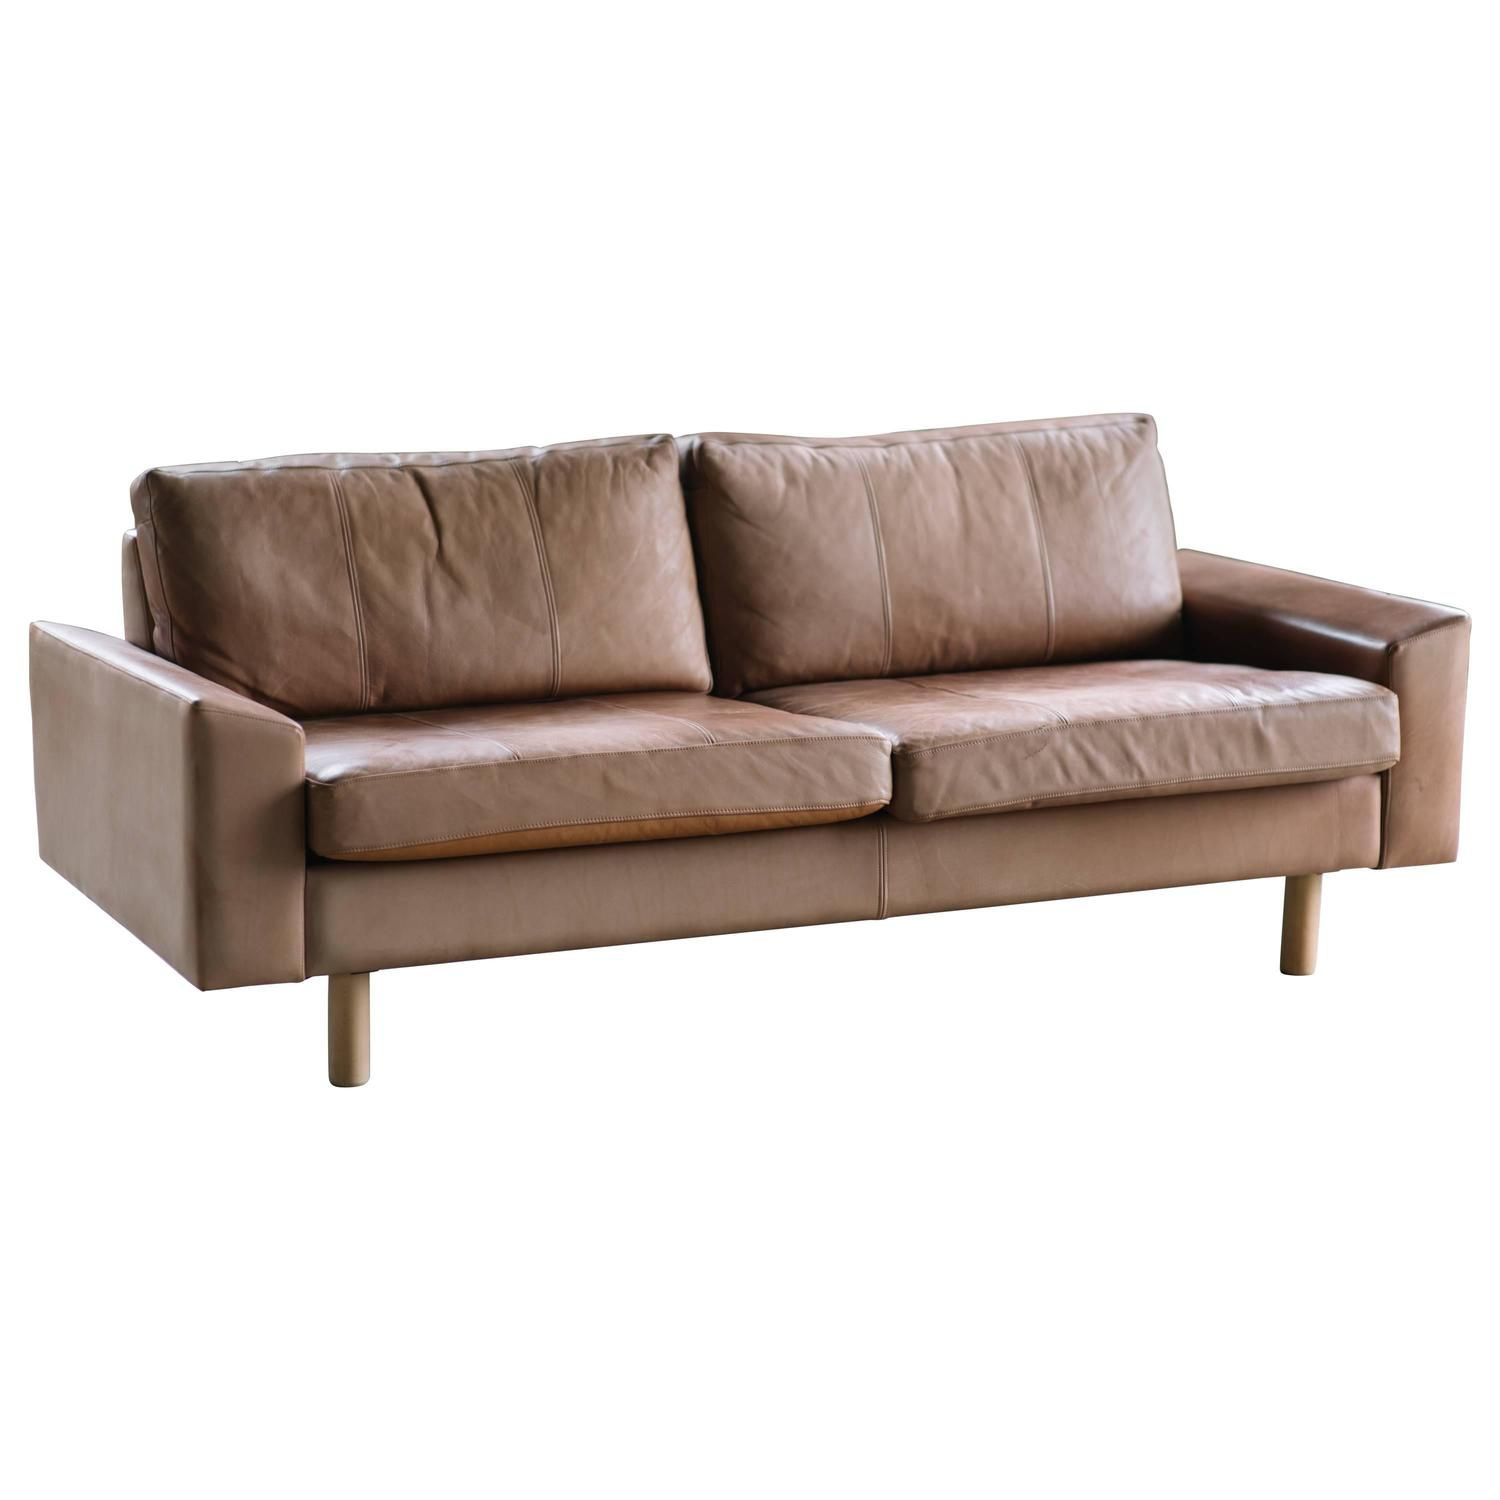 Leather Sofa By Illums Bolighus With